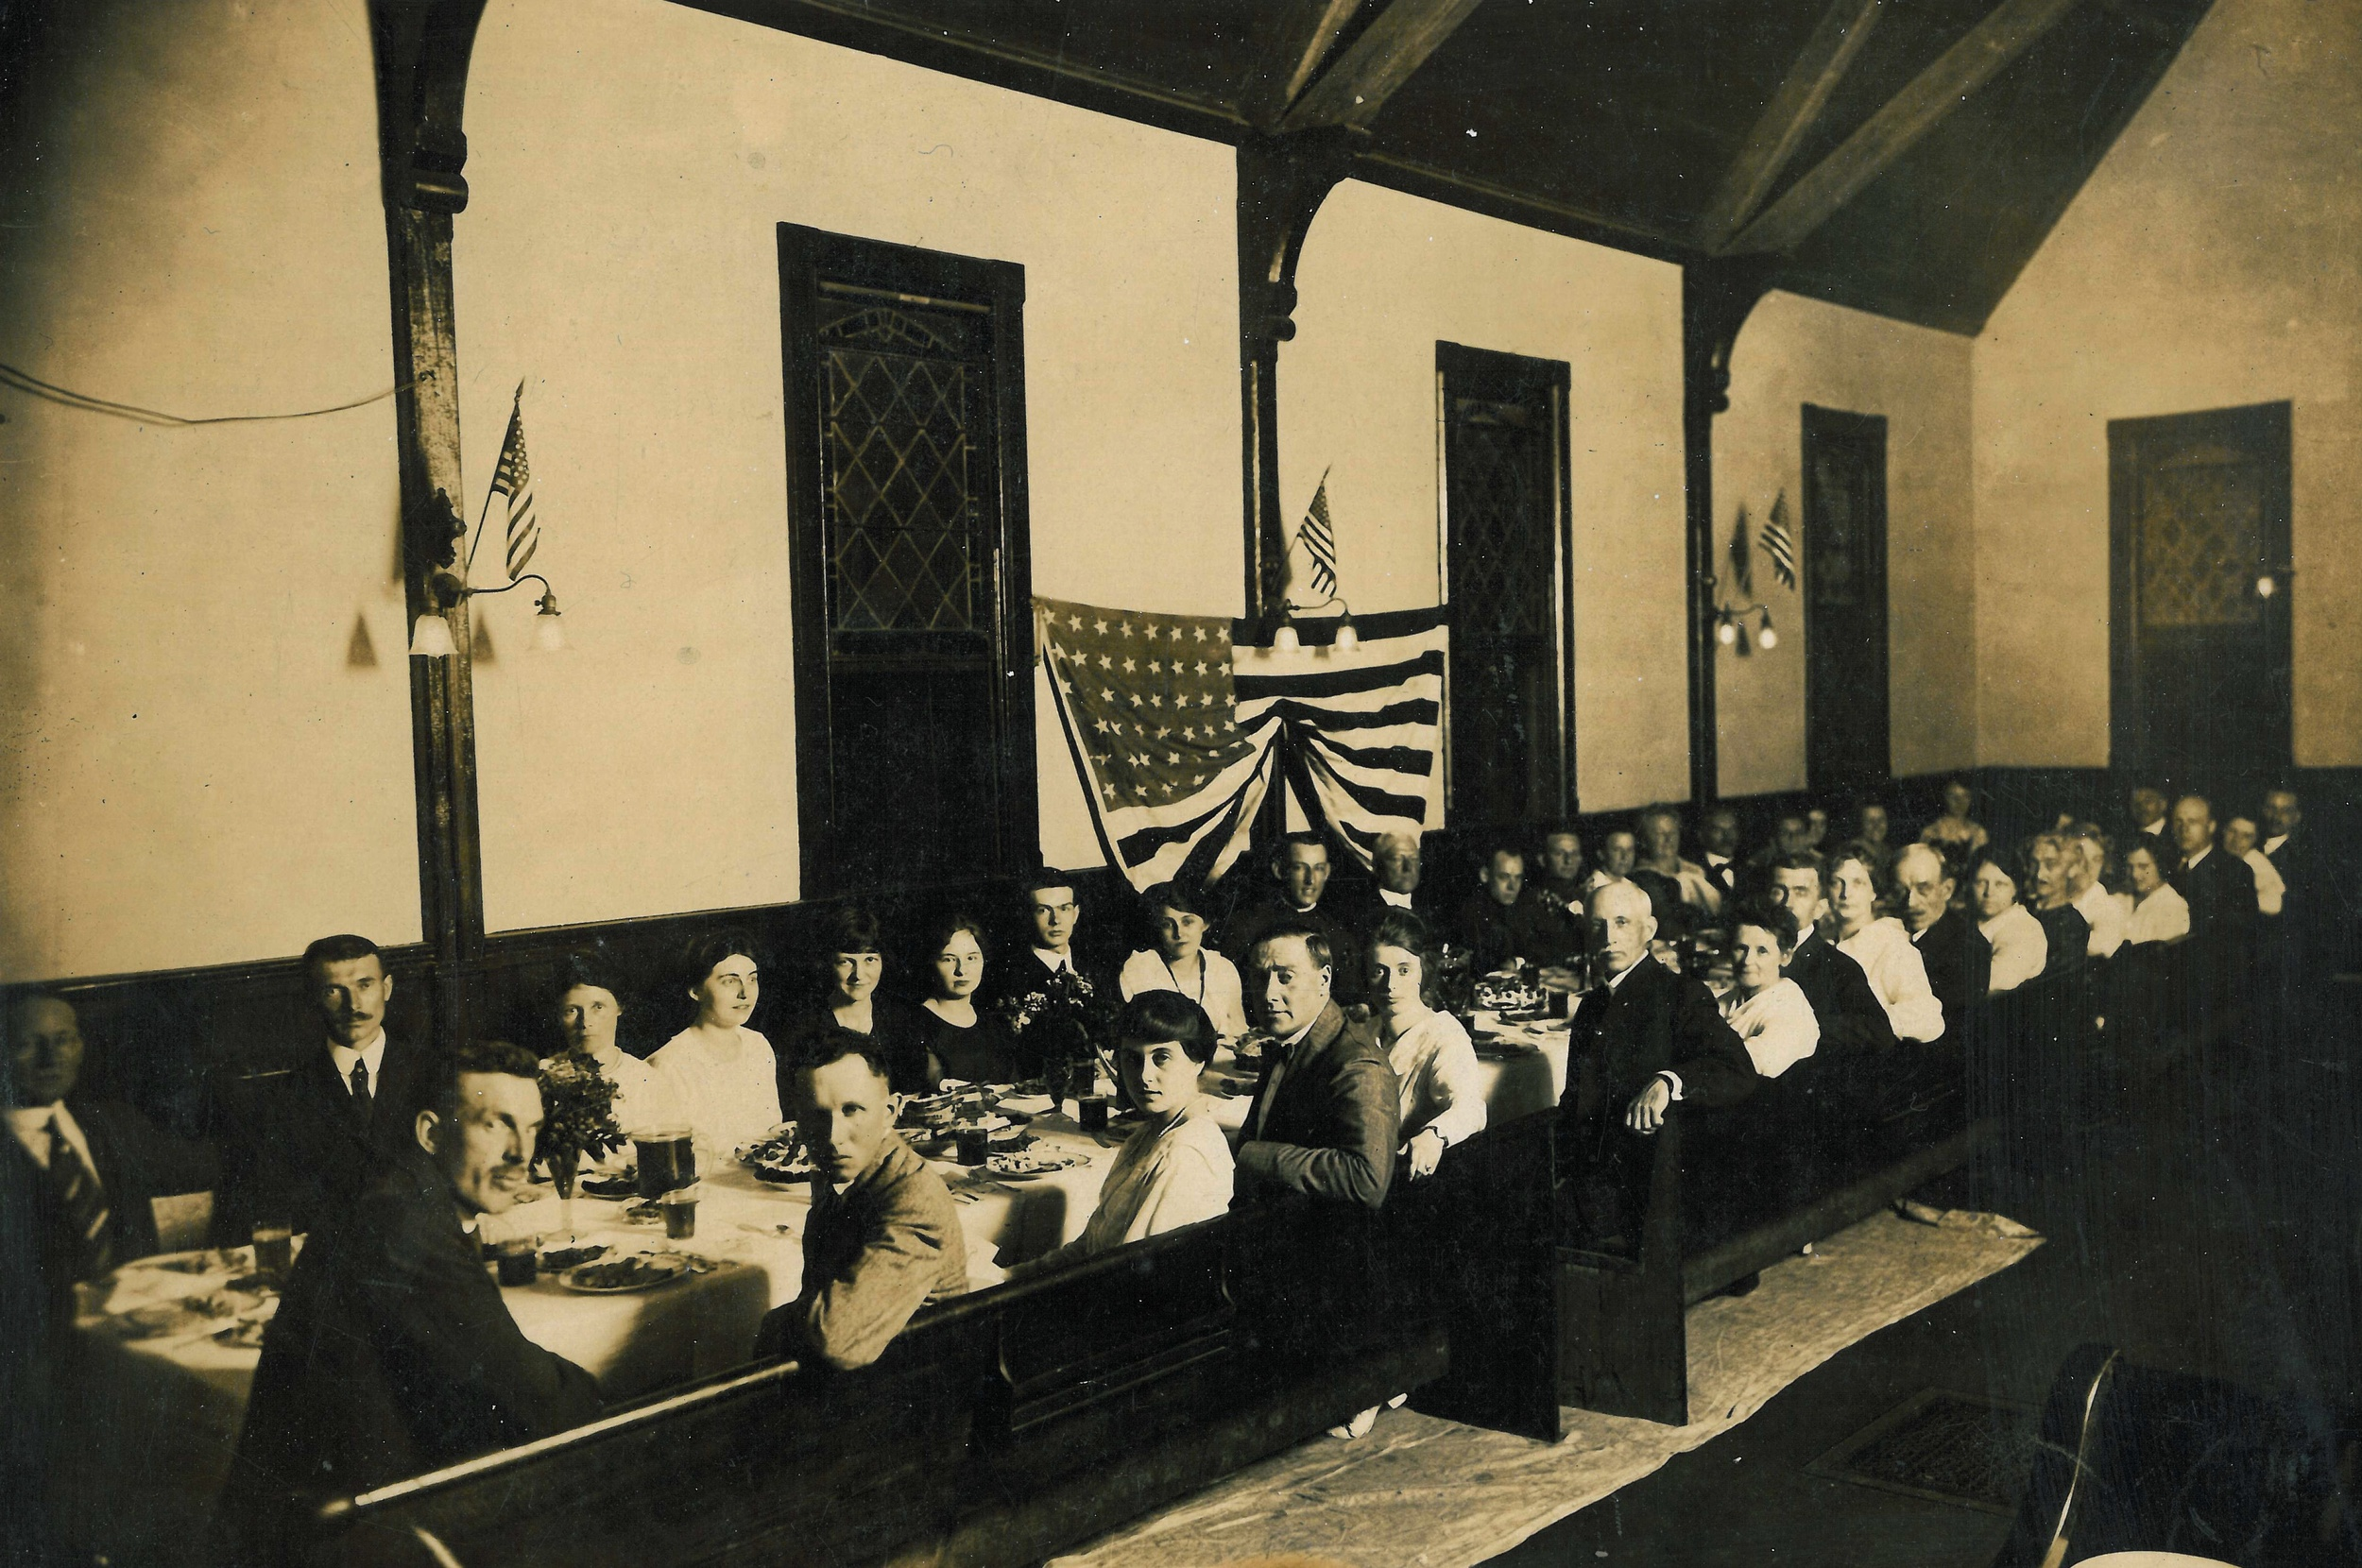 A church dinner in the early 1900s, held in the sanctuary.